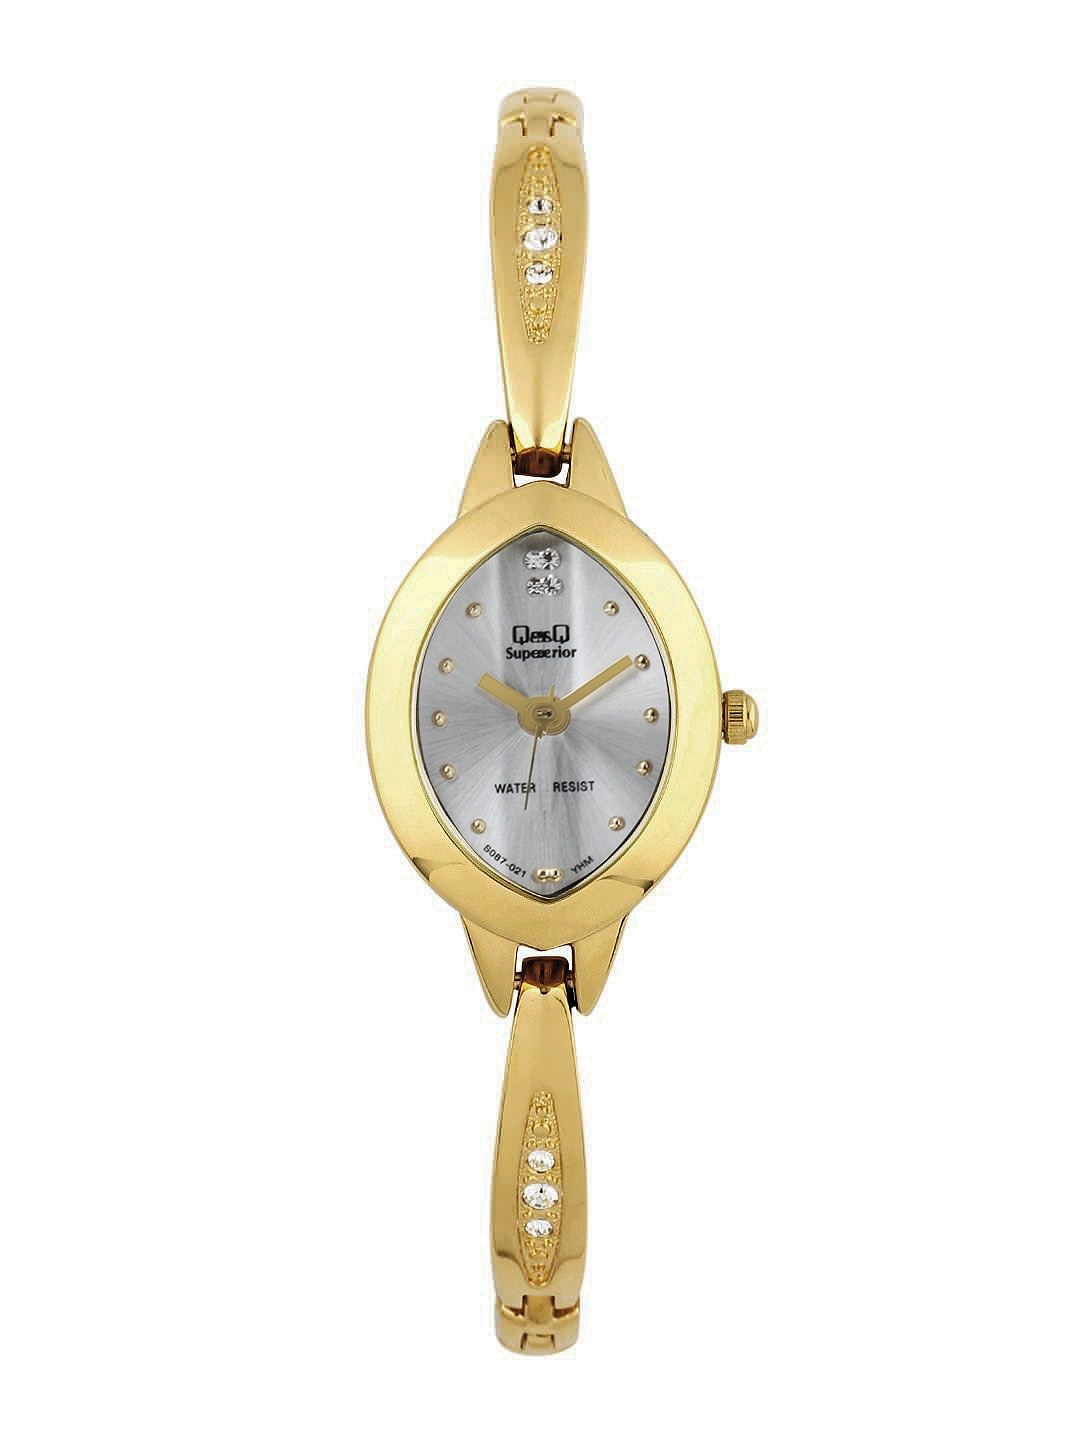 Q&Q Superior Women Silver Toned Dial Watch